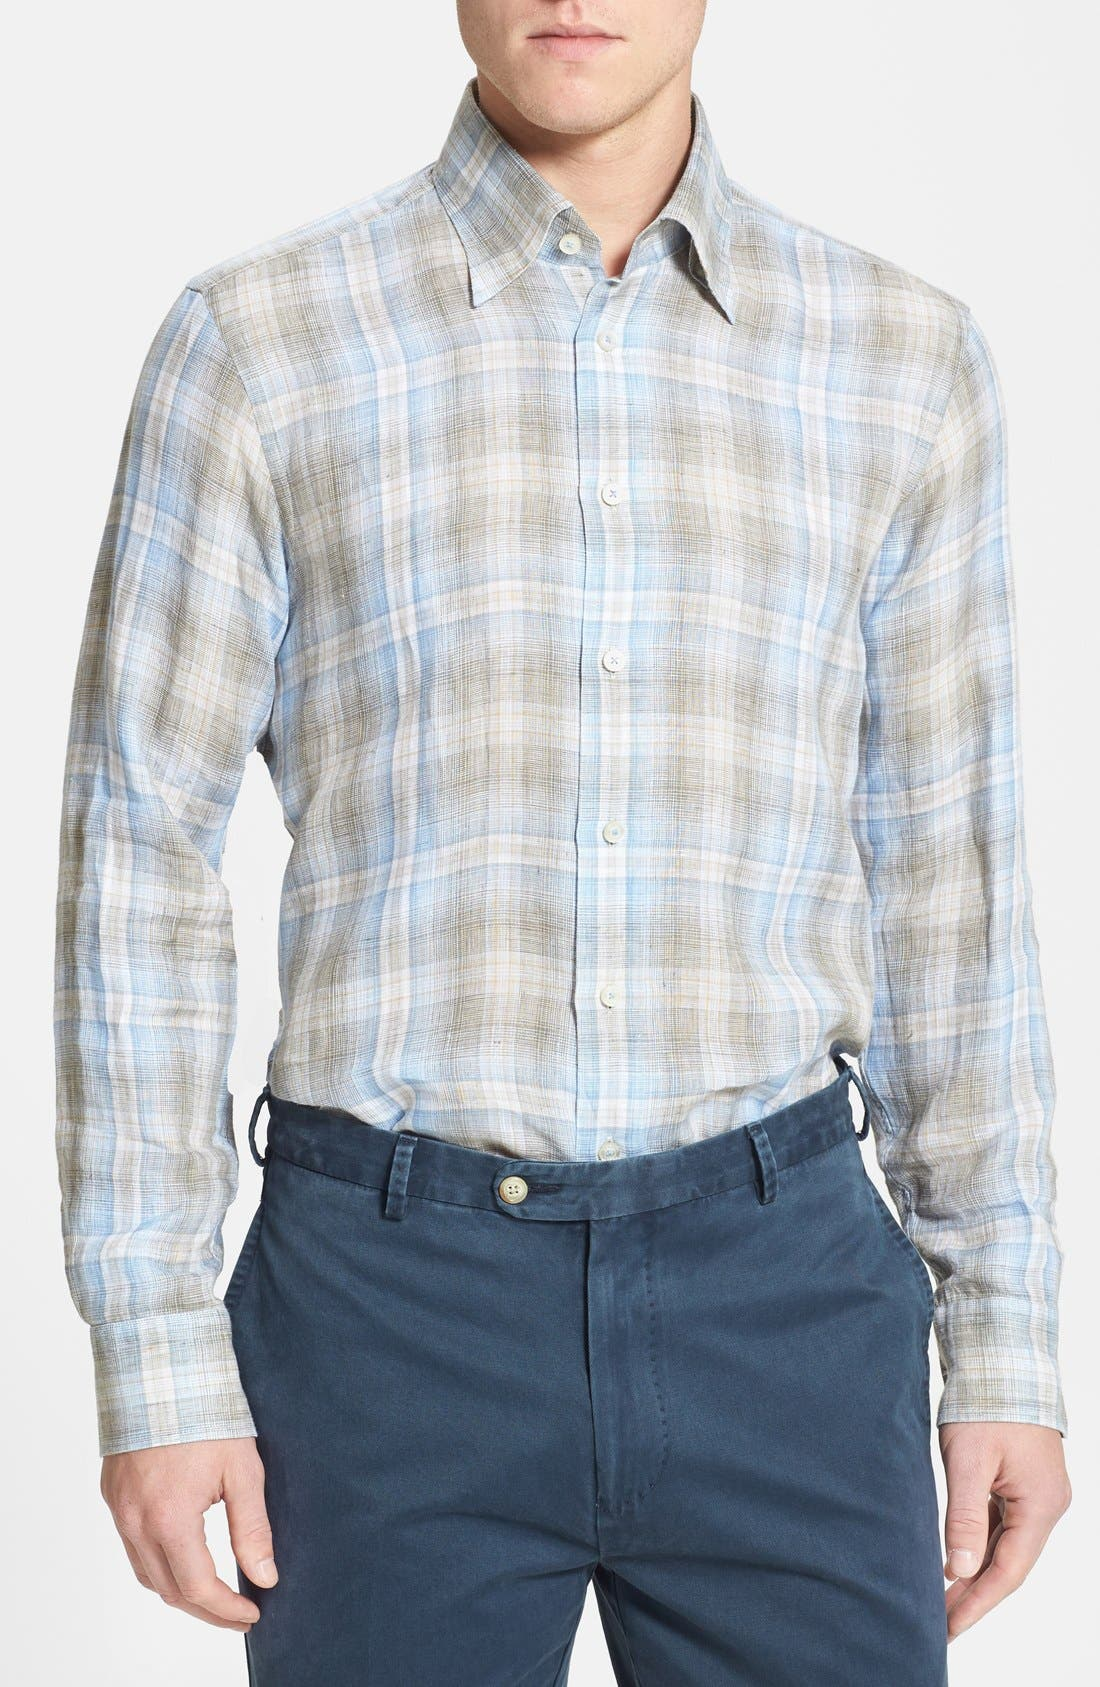 Alternate Image 1 Selected - Robert Talbott Woven Linen Sport Shirt